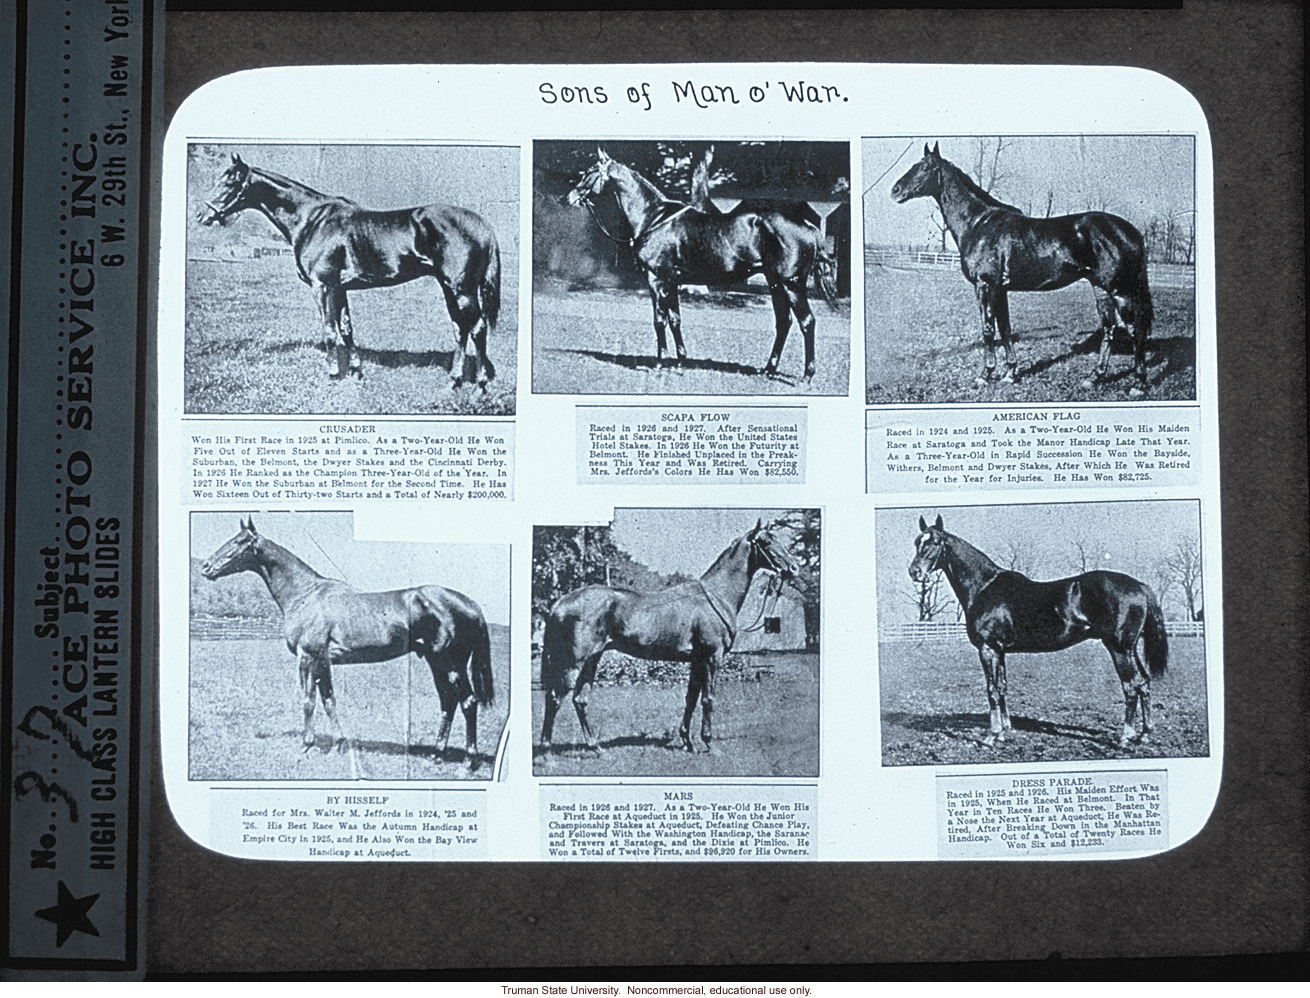 &quote;Sons of Man O' War,&quote; about Horse Genetics